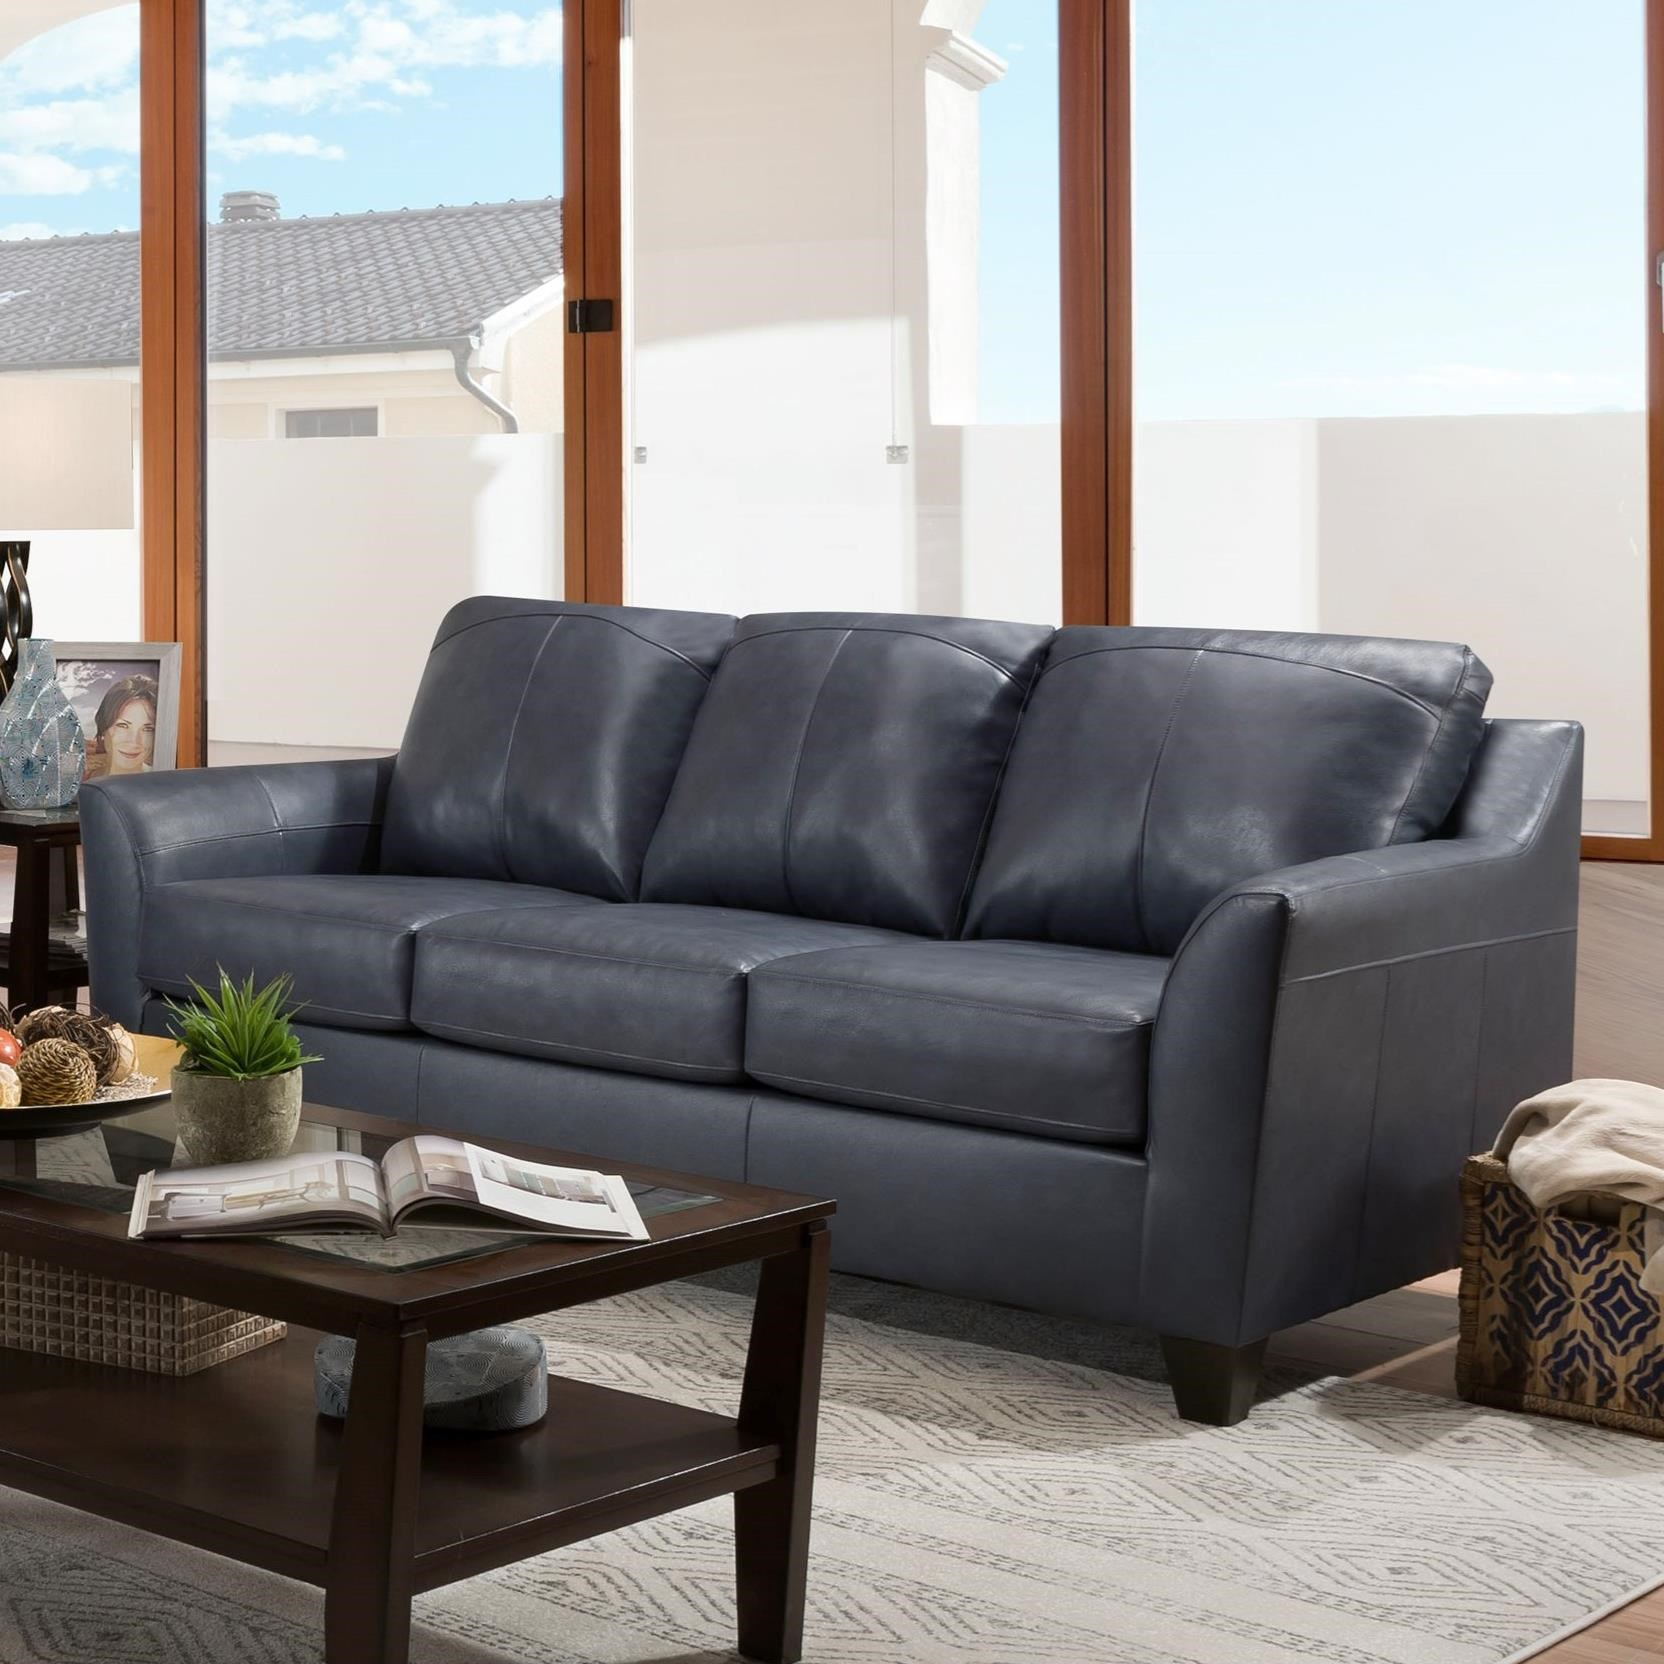 2029 Sofa by Lane at Esprit Decor Home Furnishings